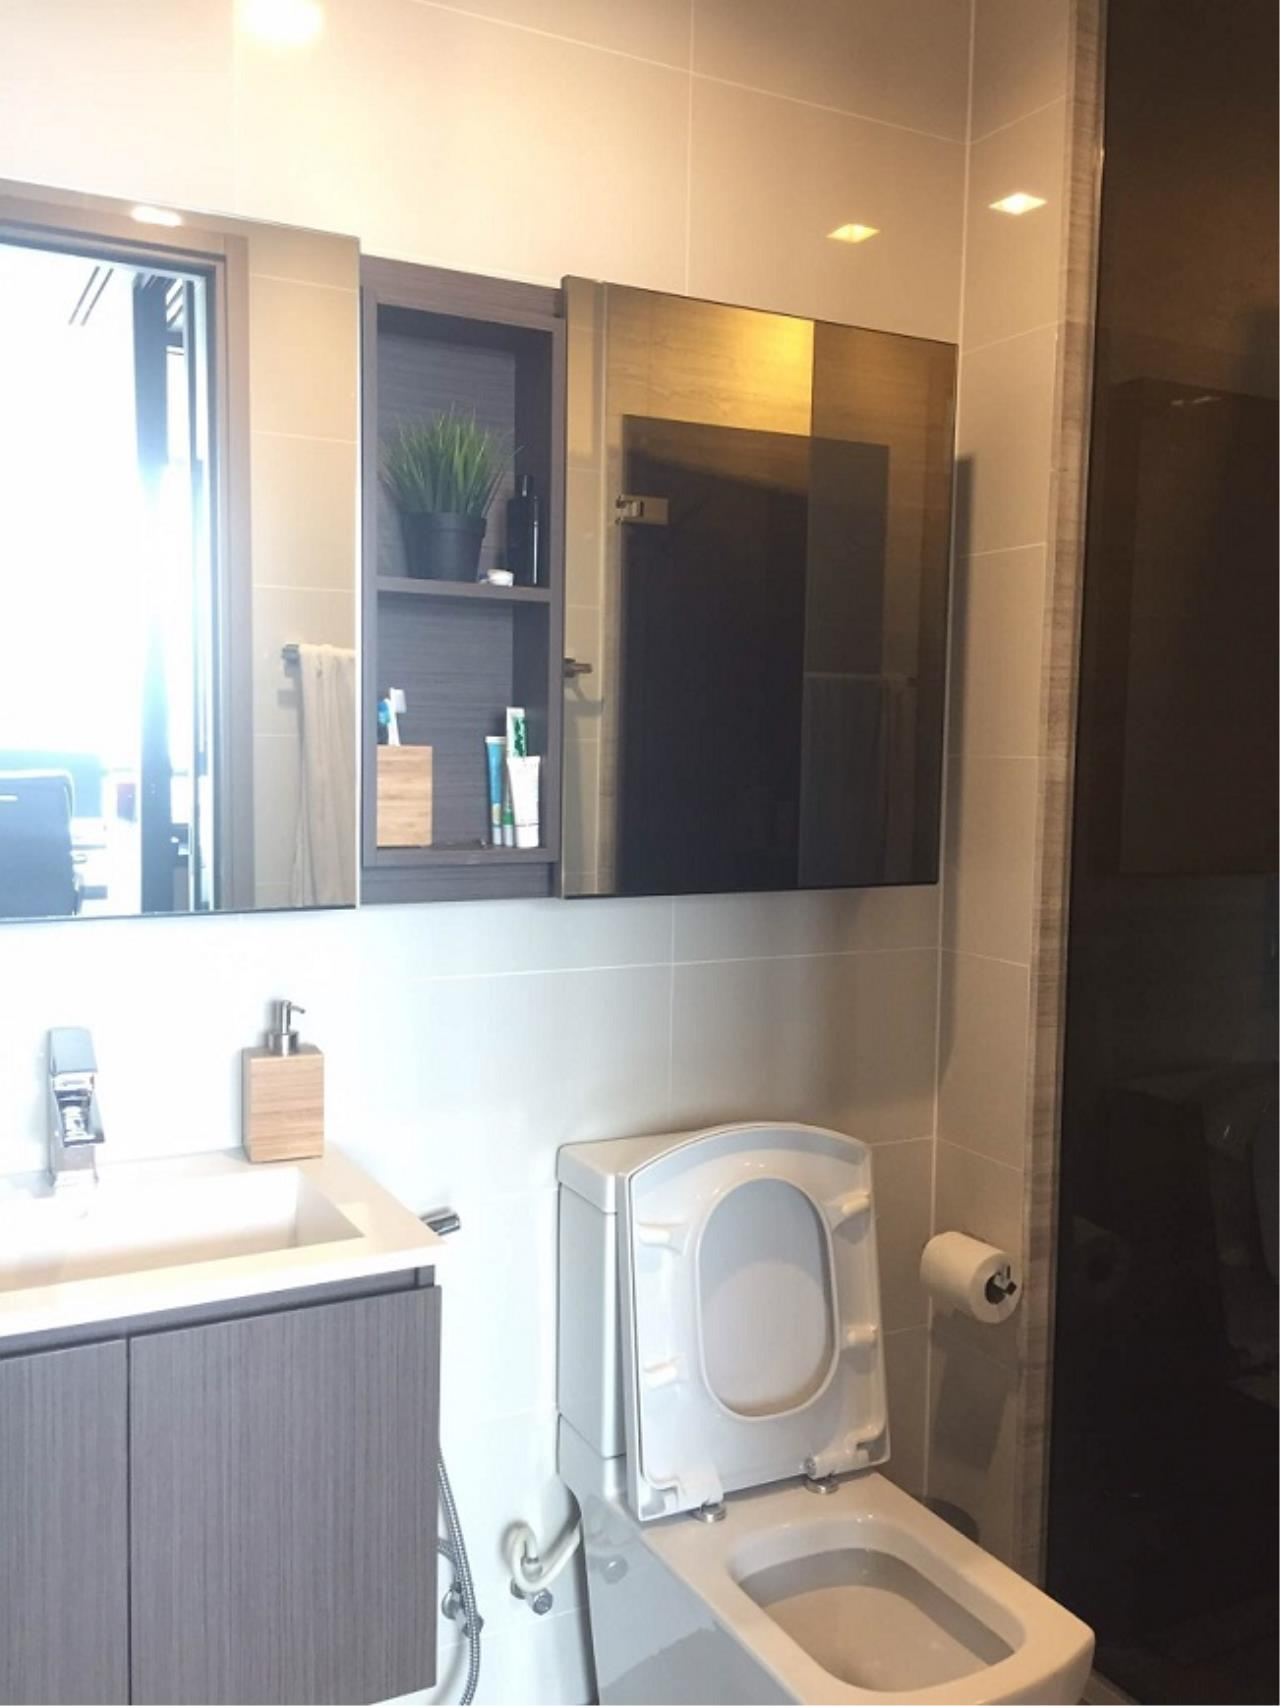 RE/MAX All Star Realty Agency's The Line Sukhumvit 71 for Sale/Rent 4